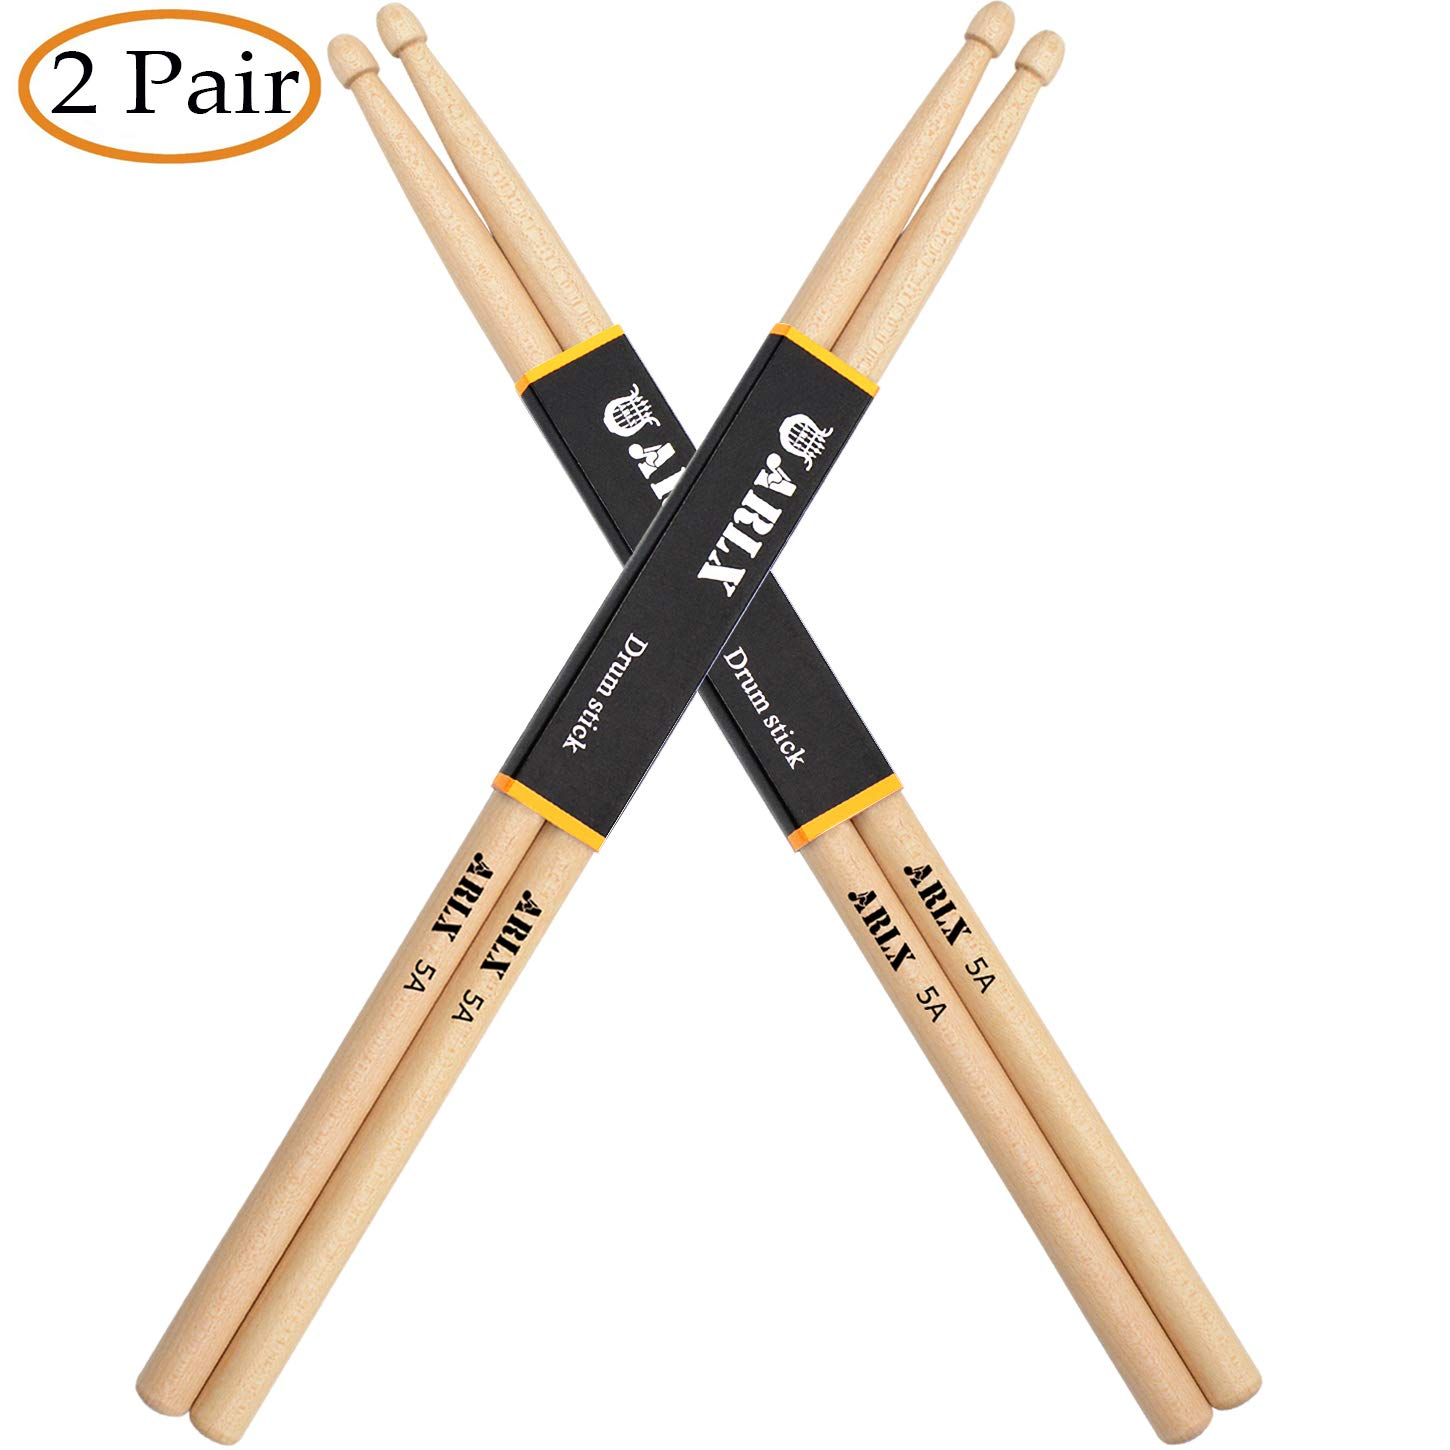 WOGOD 5A Drum Sticks Maple Drumsticks (Two pair)